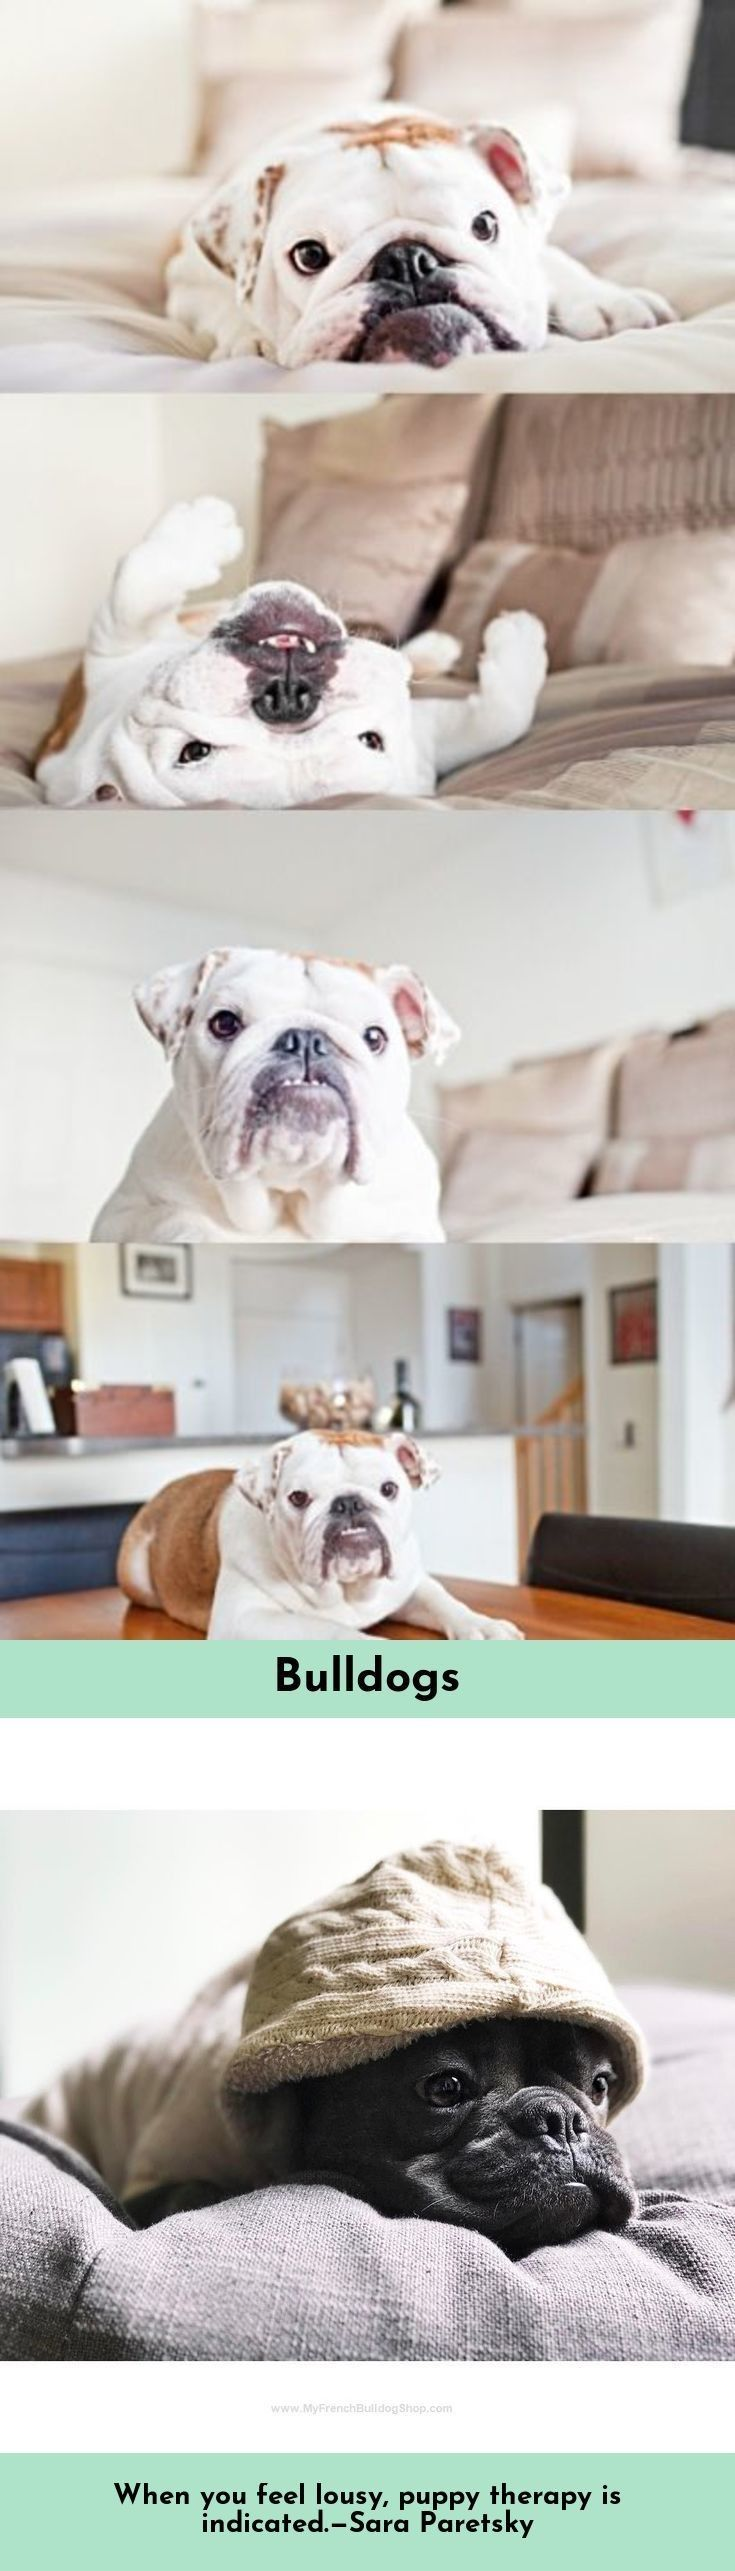 Read Information On Bulldogs Simply Click Here To Learn More Baby Dogs Cute Animals Bulldog